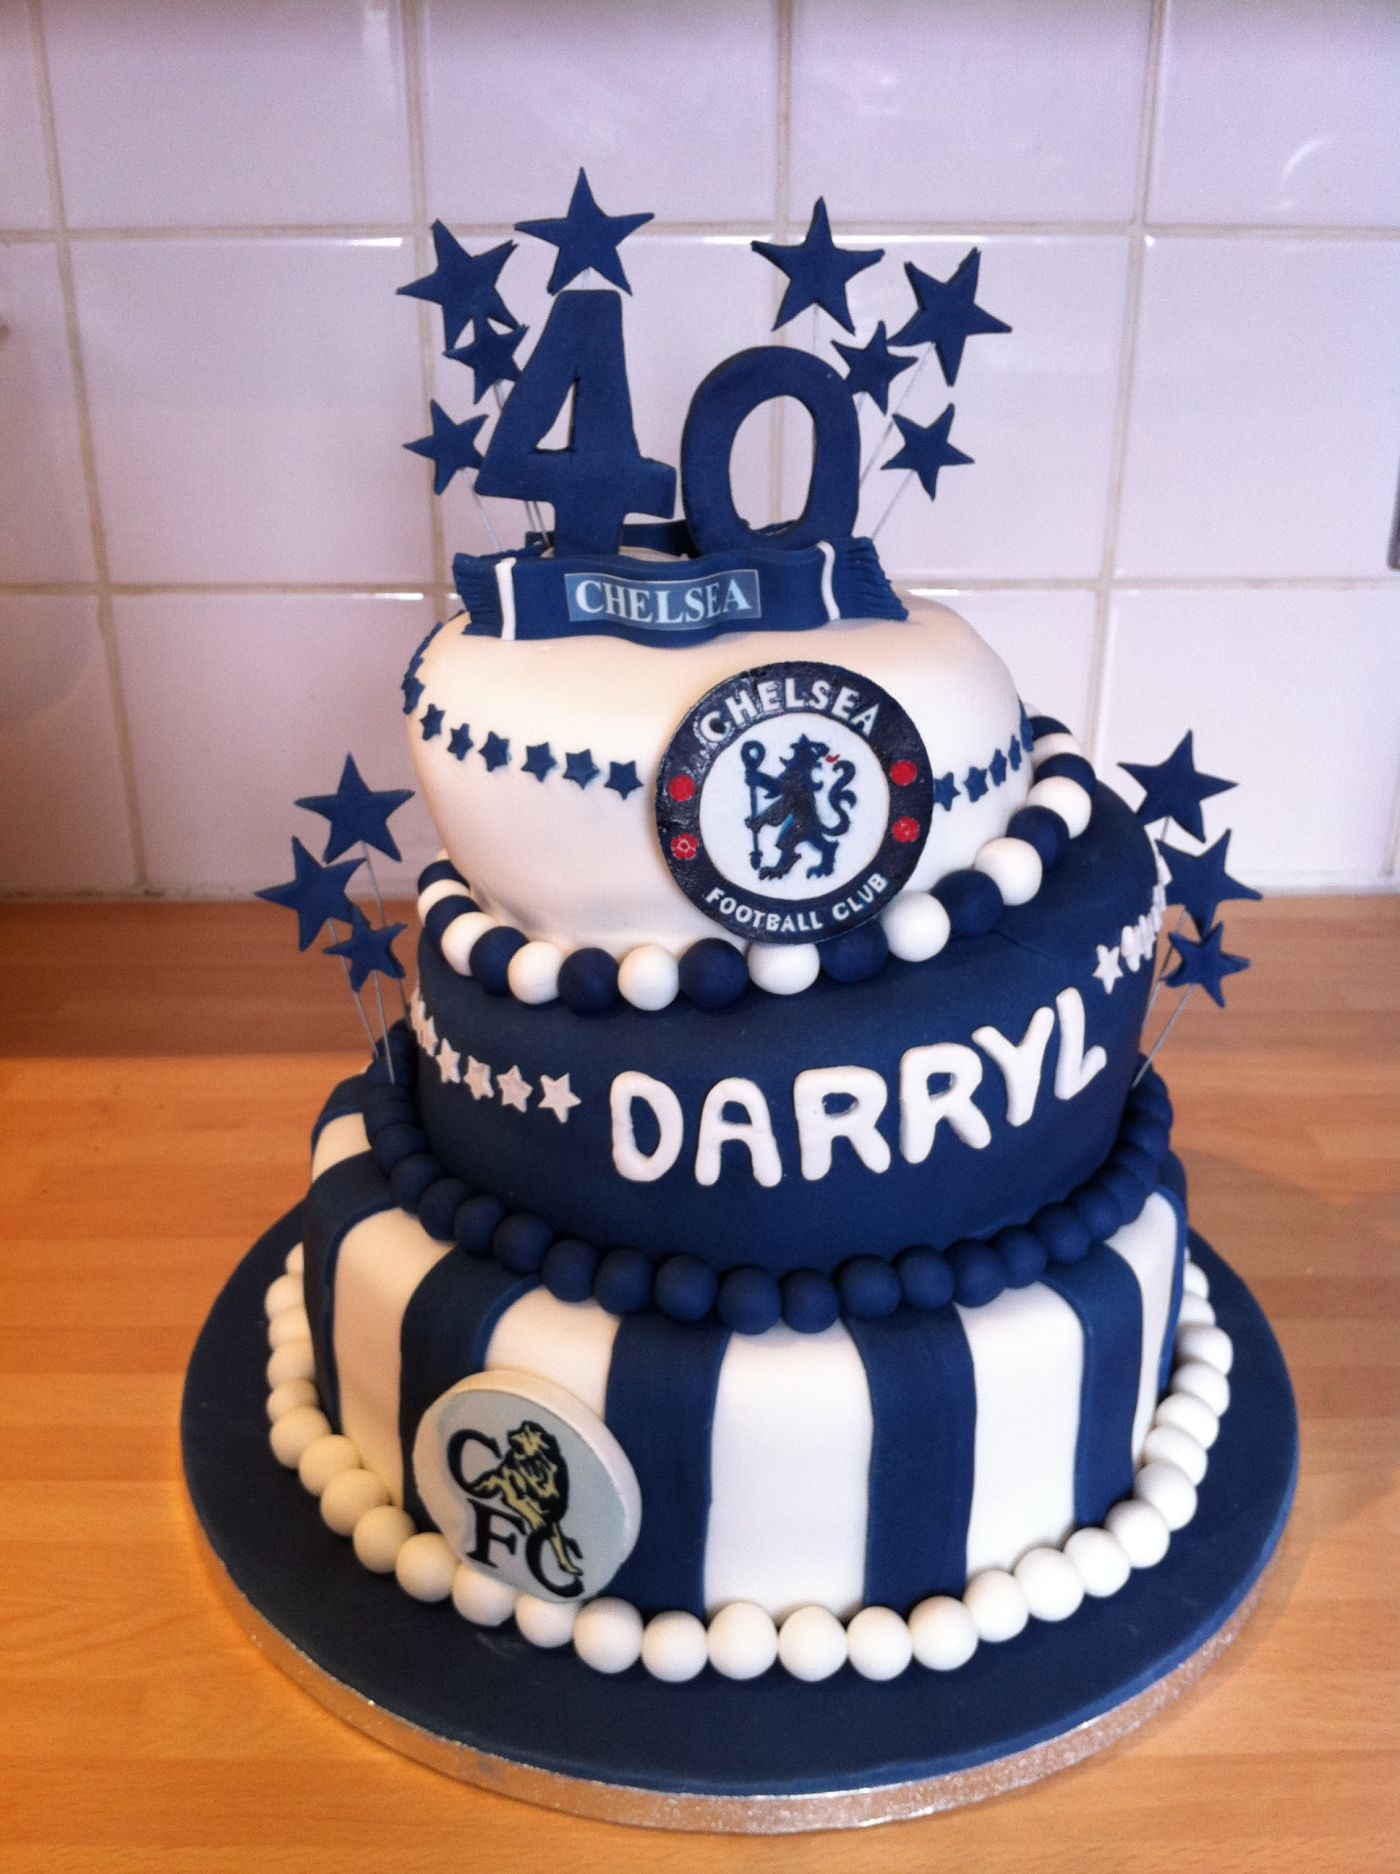 Chelsea Football Club Cake Decorations